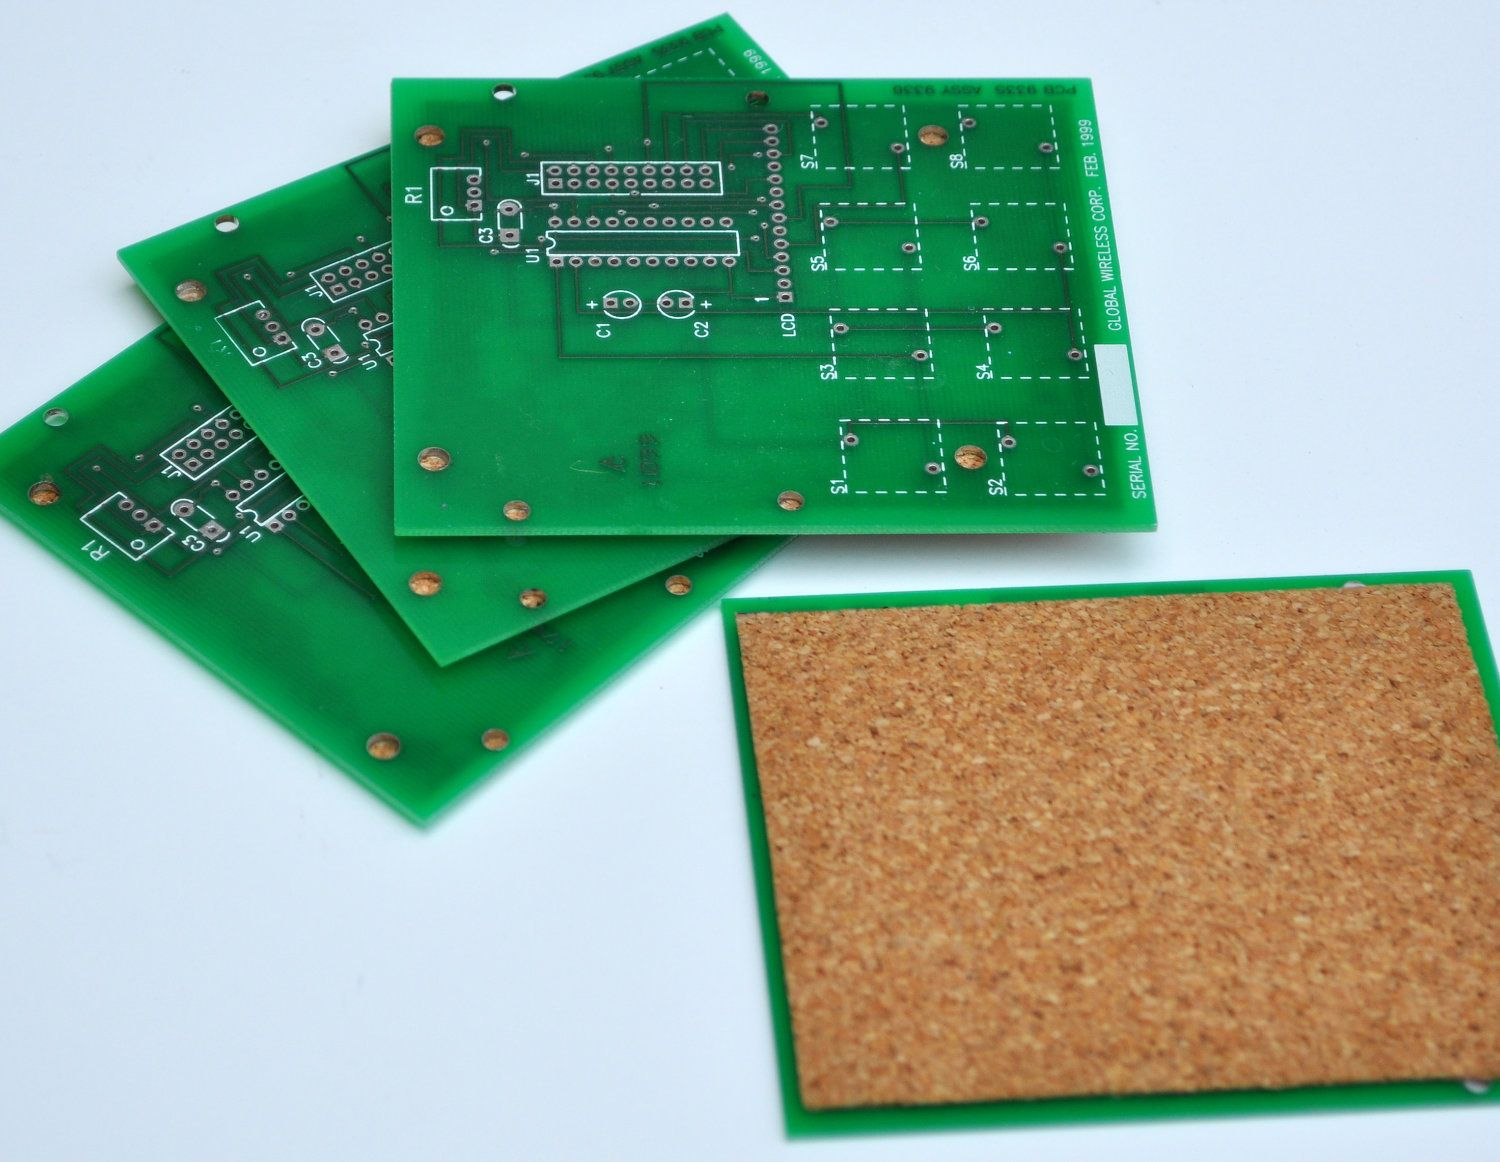 Circuit Board Coasters Coaster Set Amazon Com Picture Frame Geekery Pinterest Geeky Saved From E Waste 12 00 Via Etsy